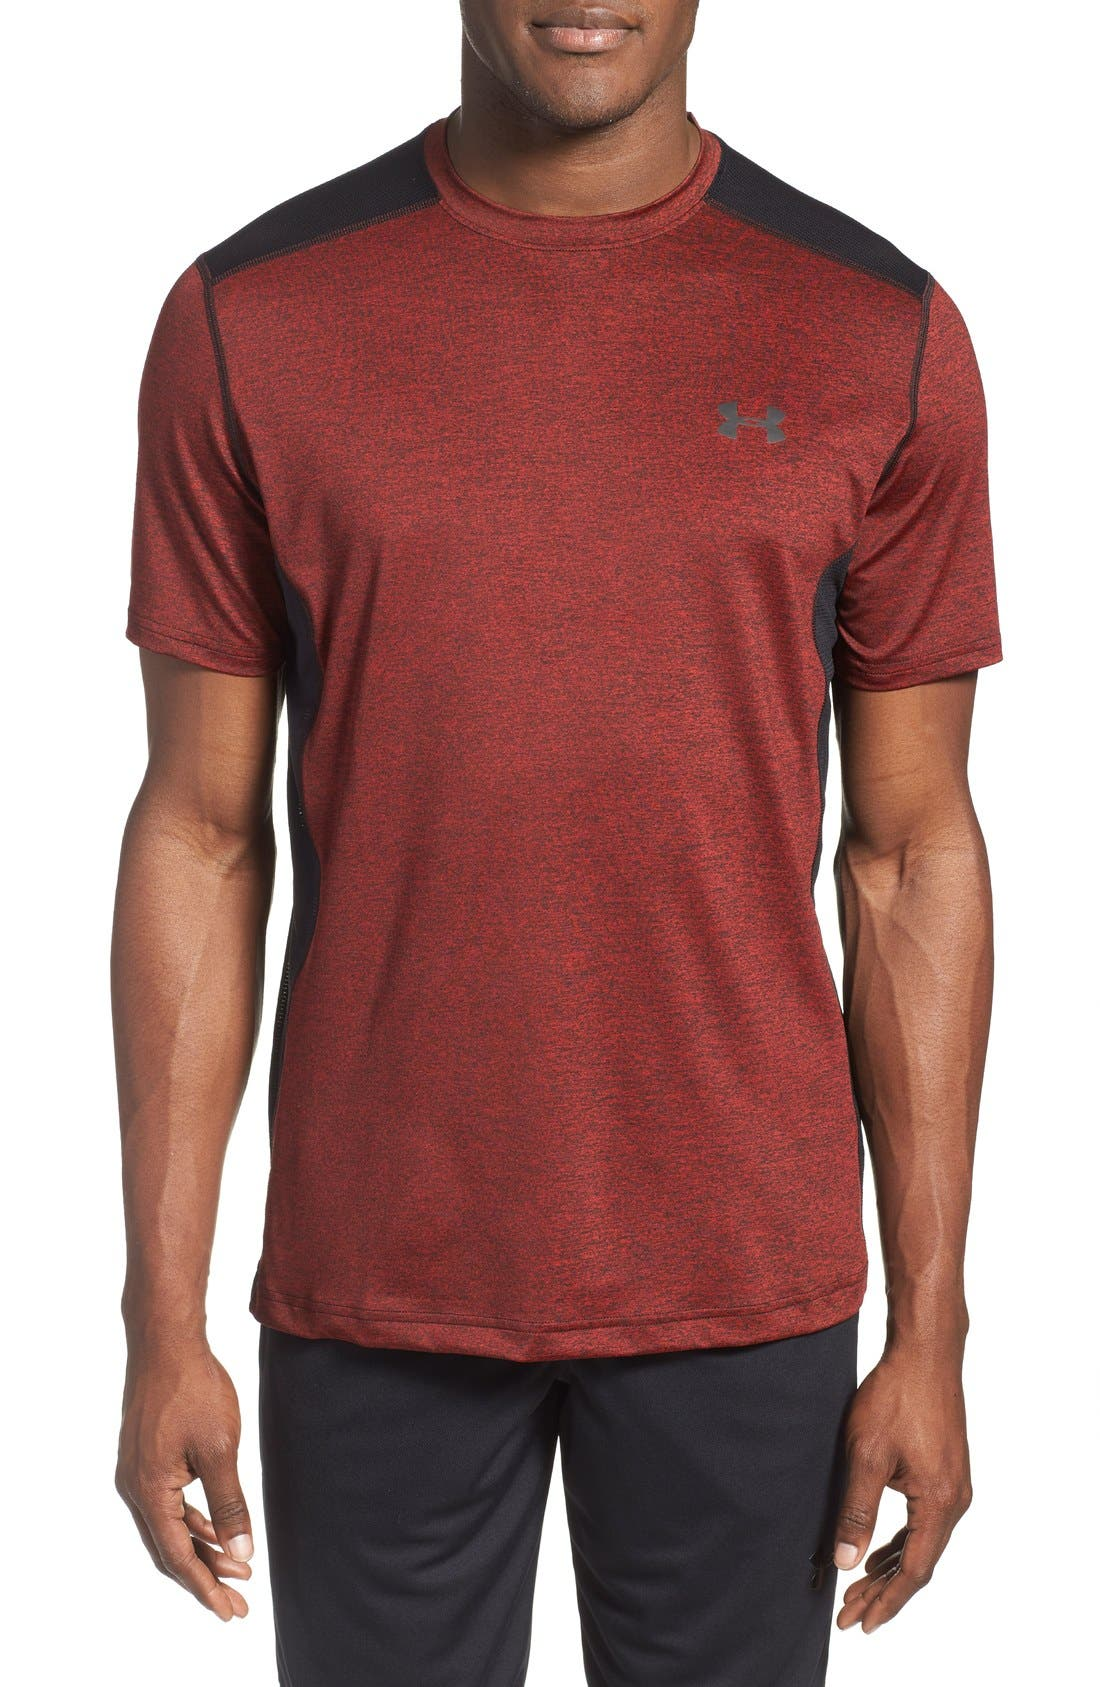 Under Armour 'Raid' HeatGear® Training T-Shirt